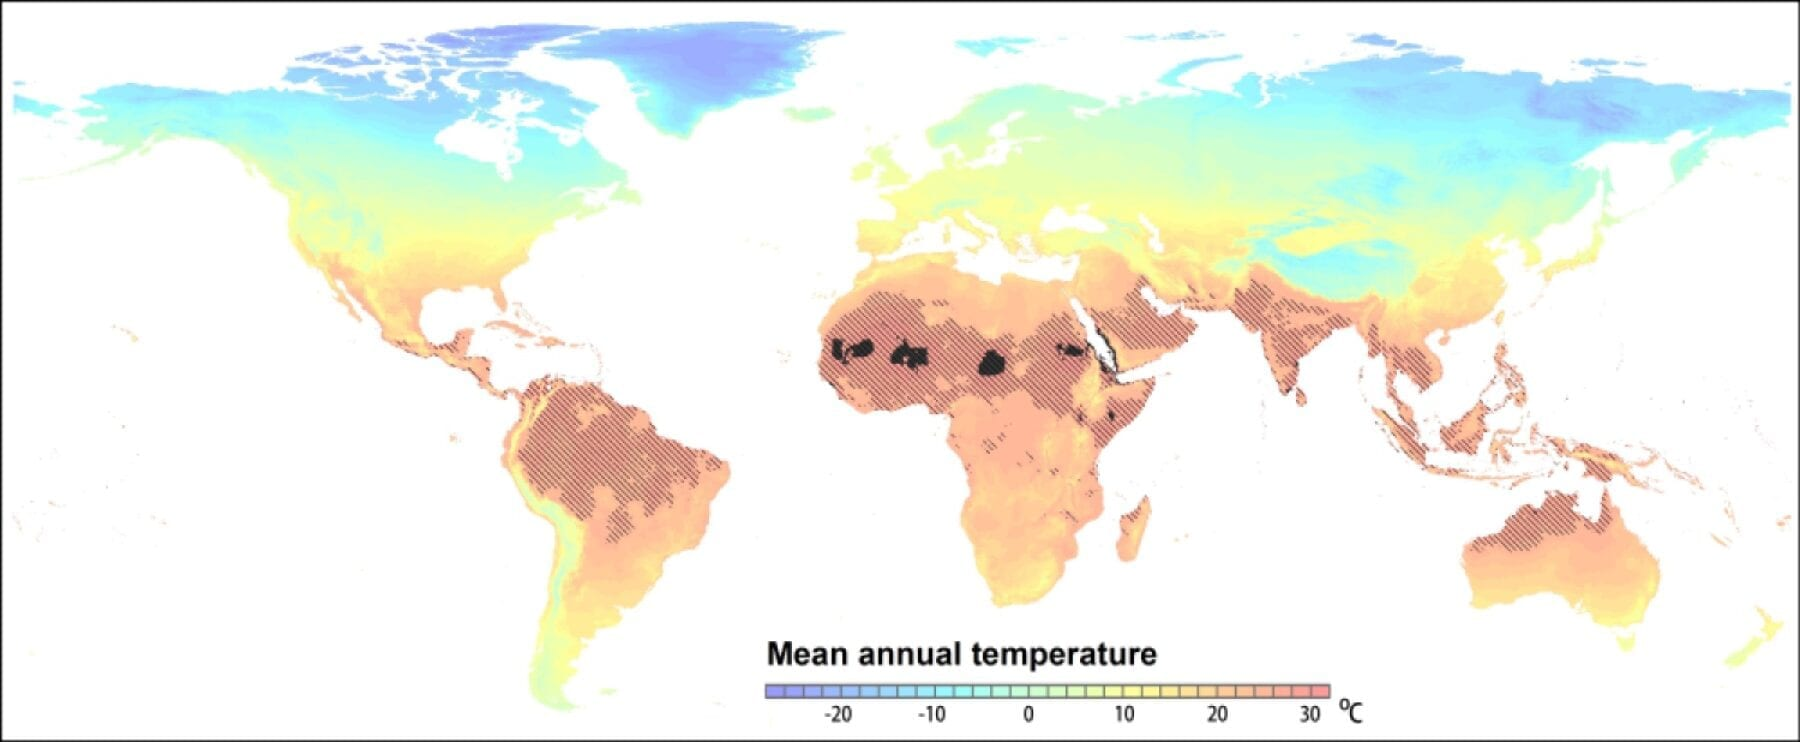 Expansion of extremely hot regions in a business-as-usual climate scenario. In the current climate, mean annual temperatures >29? are restricted to the small dark areas in the Sahara region. In 2070 such conditions are projected to occur throughout the shaded area following the RCP 8.5 scenario